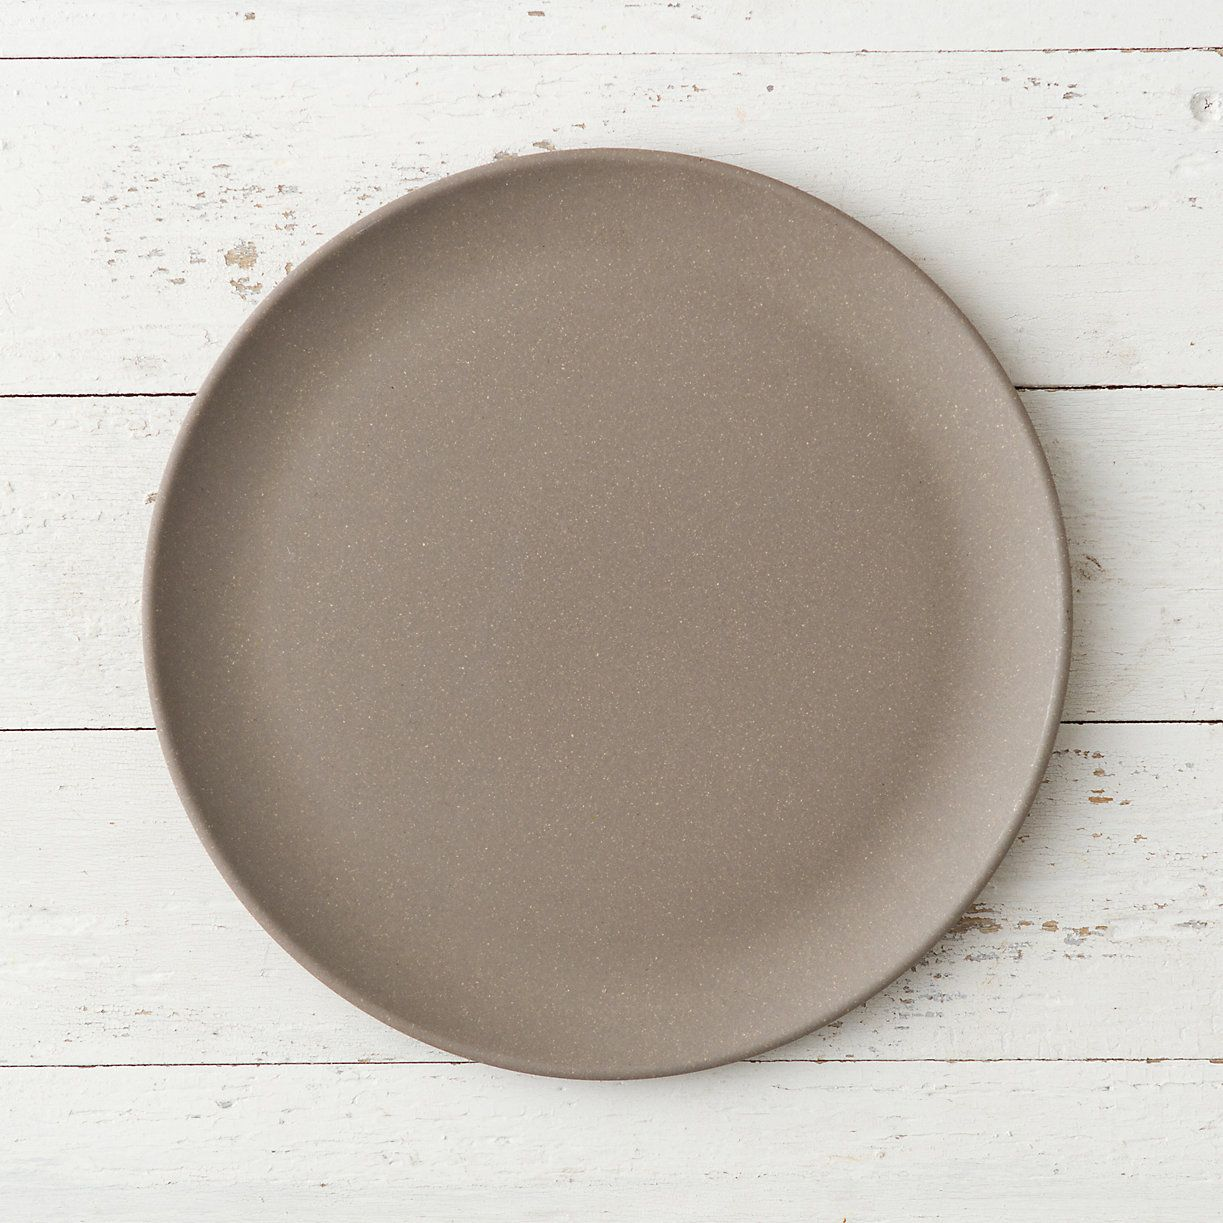 Bamboo Picnic Plate in Entertaining DINING + SERVING Dinnerware at Terrain & Bamboo Picnic Plate   Picnic plates Outdoor entertaining and Serveware